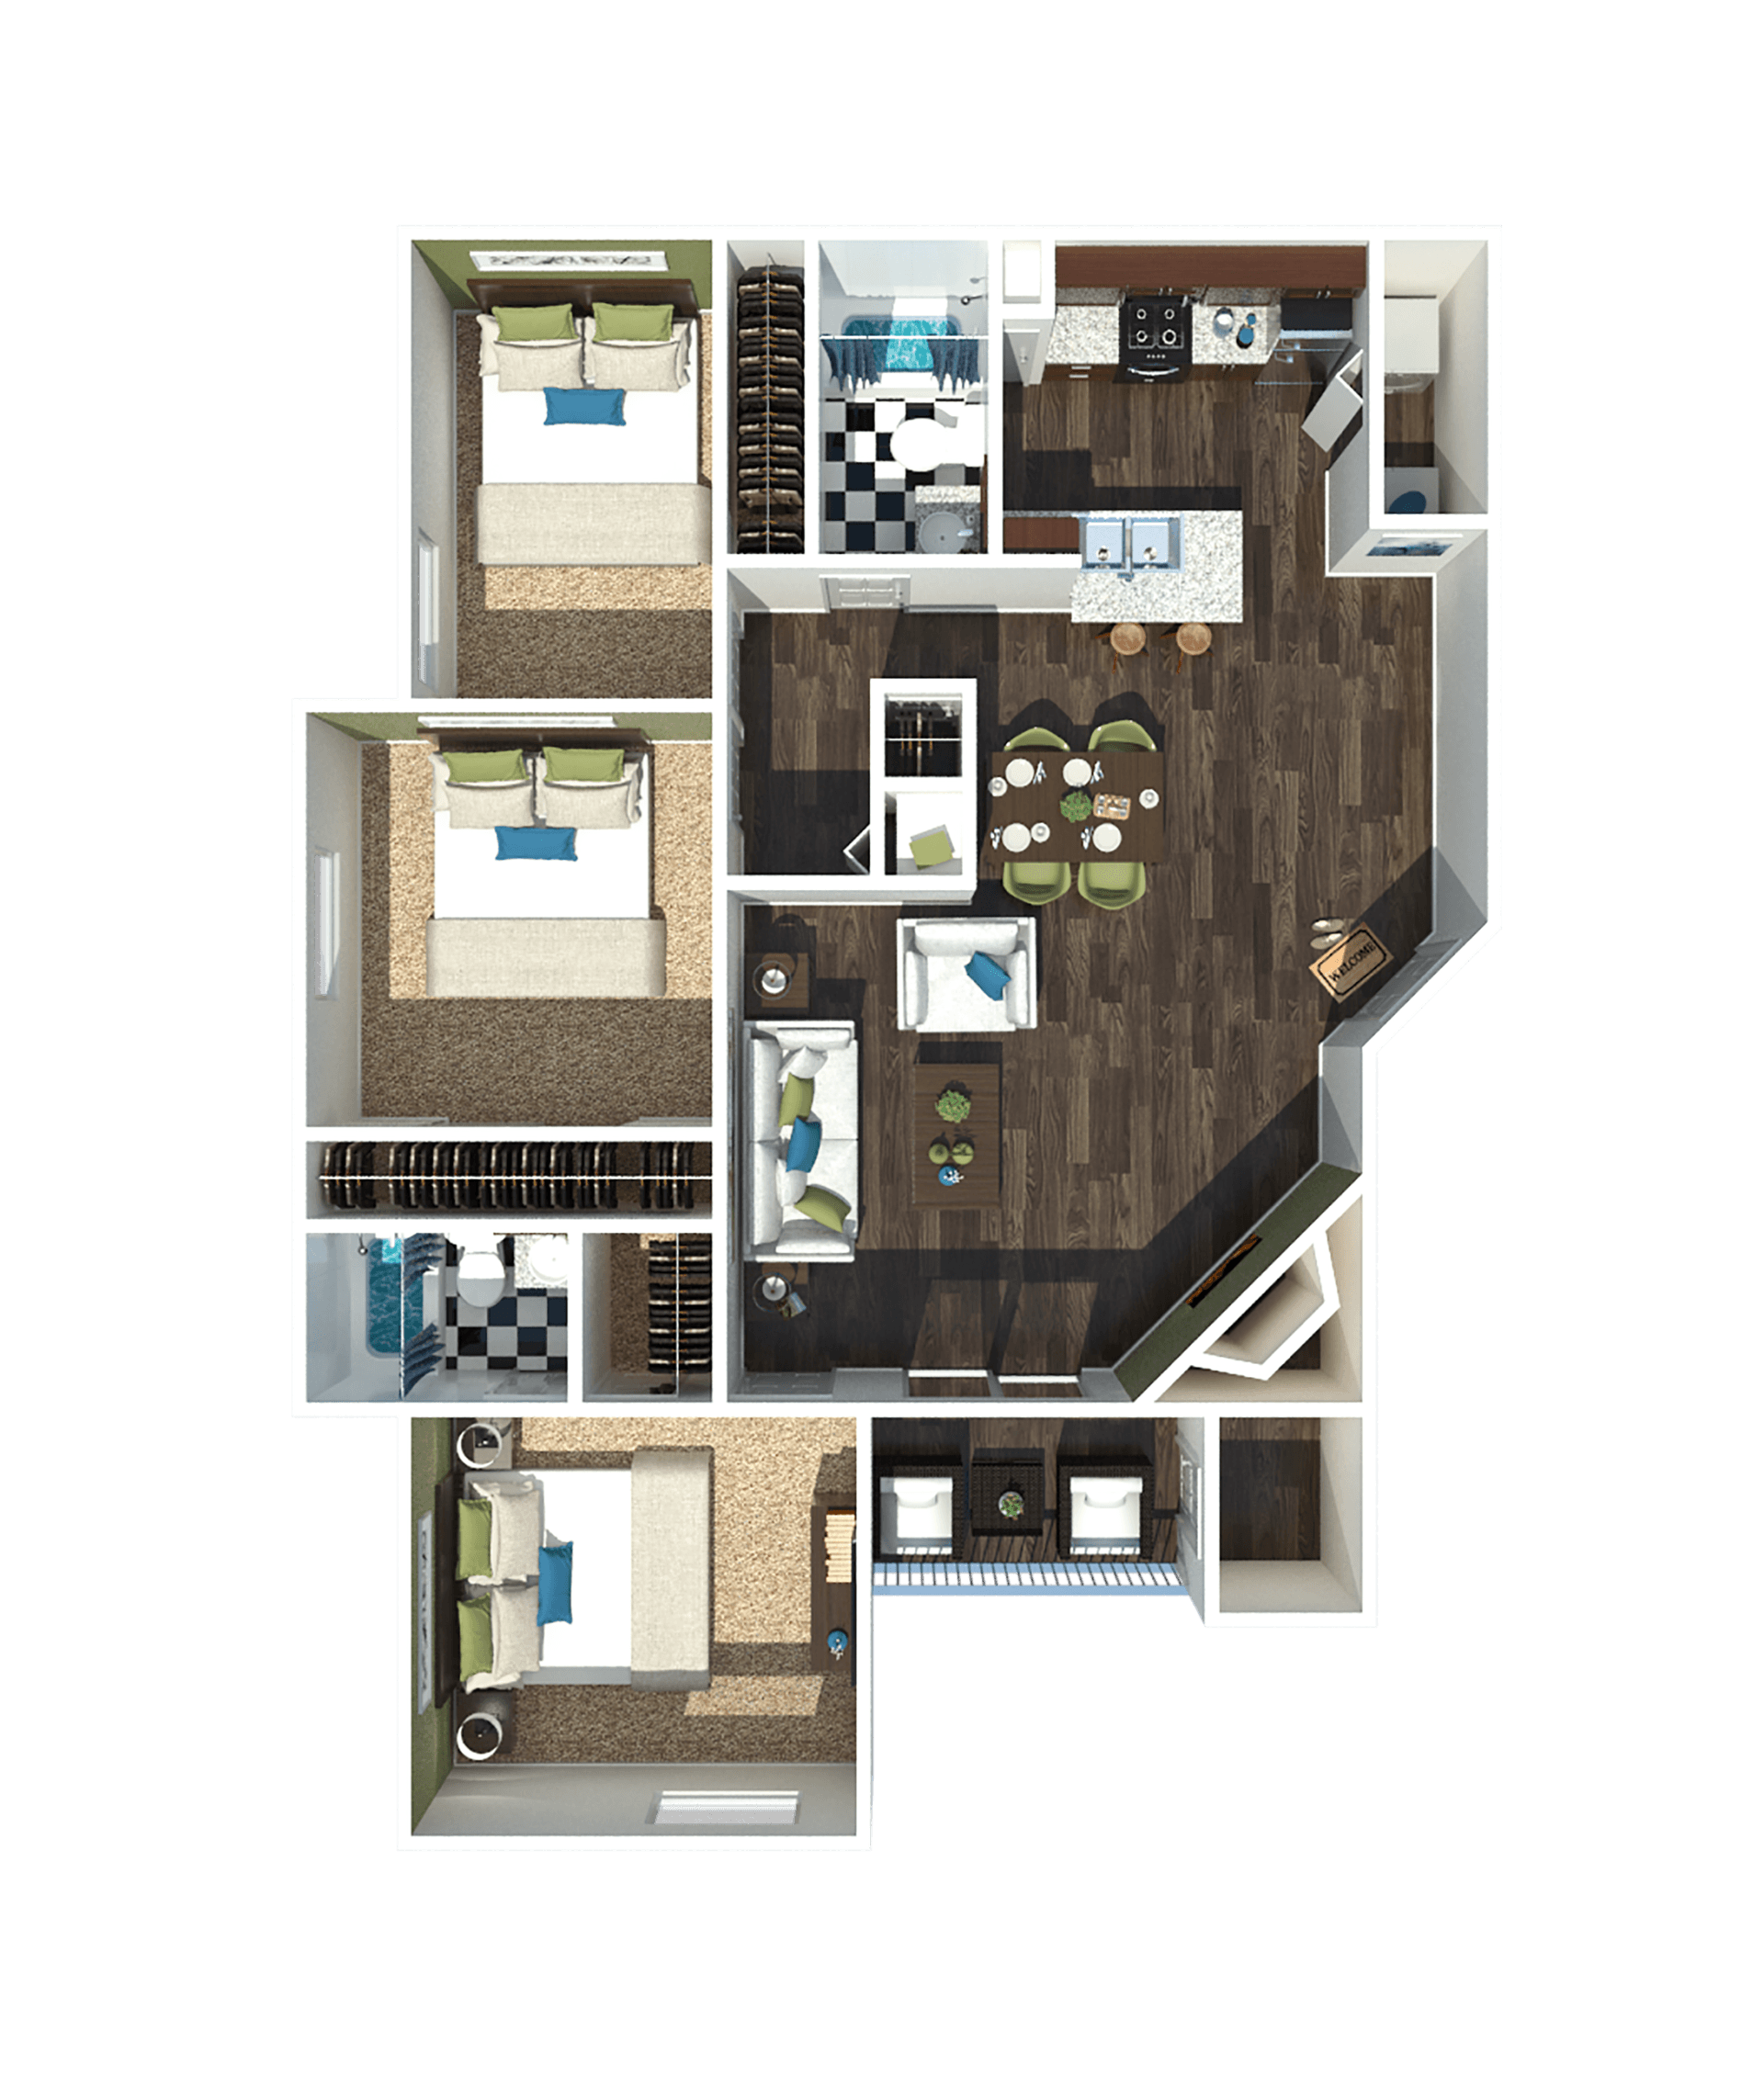 Best Website To Look For Apartments: Willows Apartment Homes